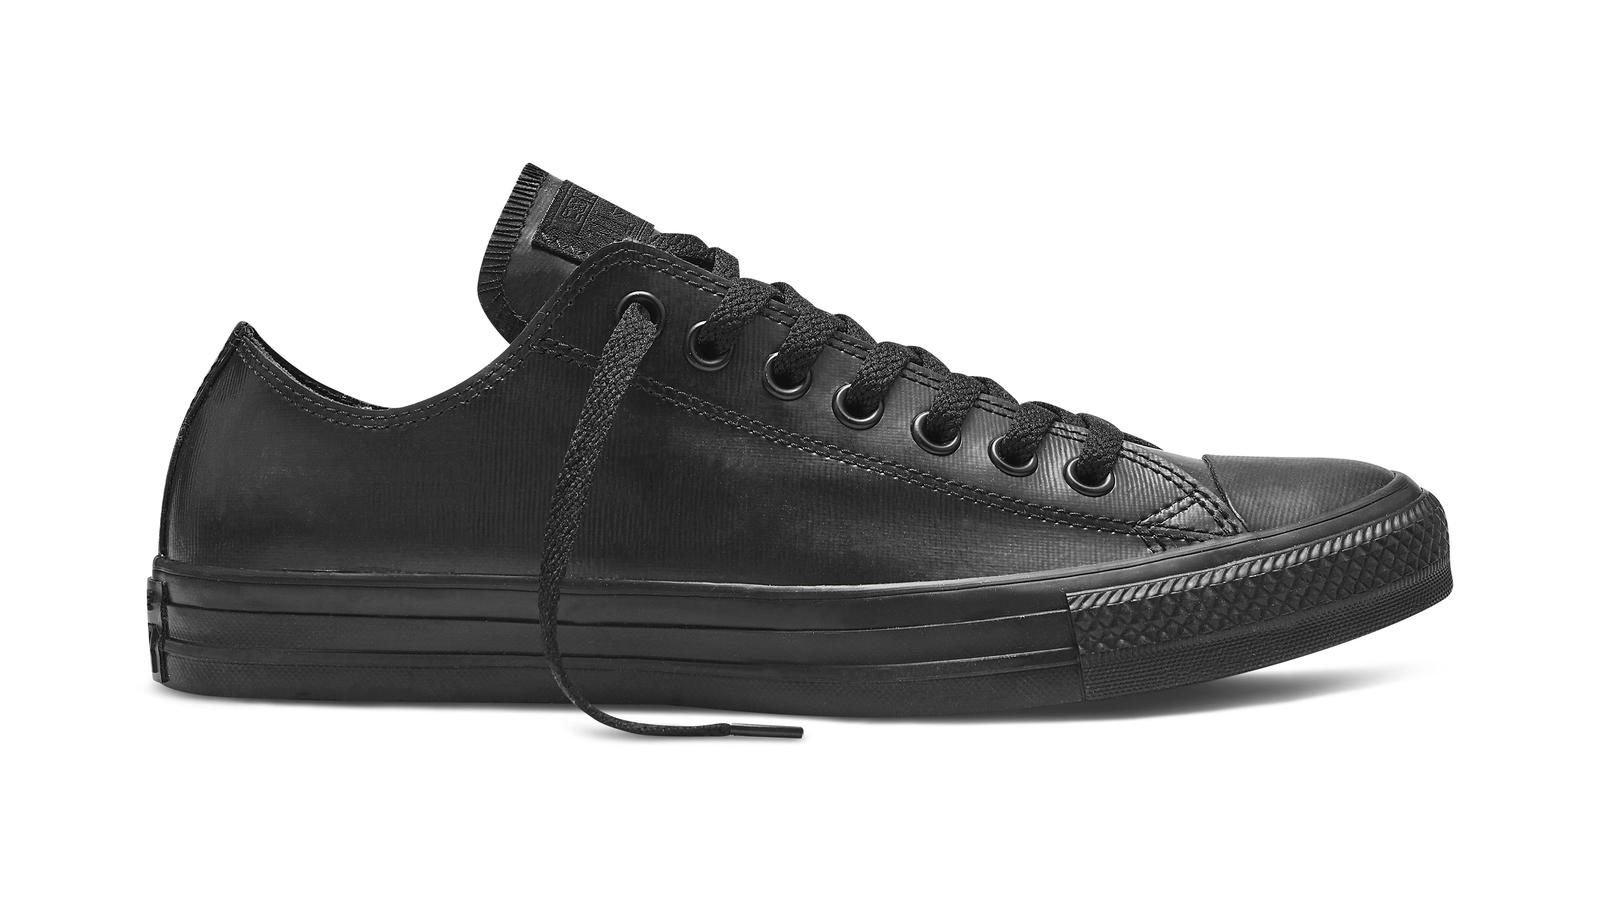 eb2586e46892 ... coupon code for converse chuck taylor all star ox black original c9c38  09e17 ...